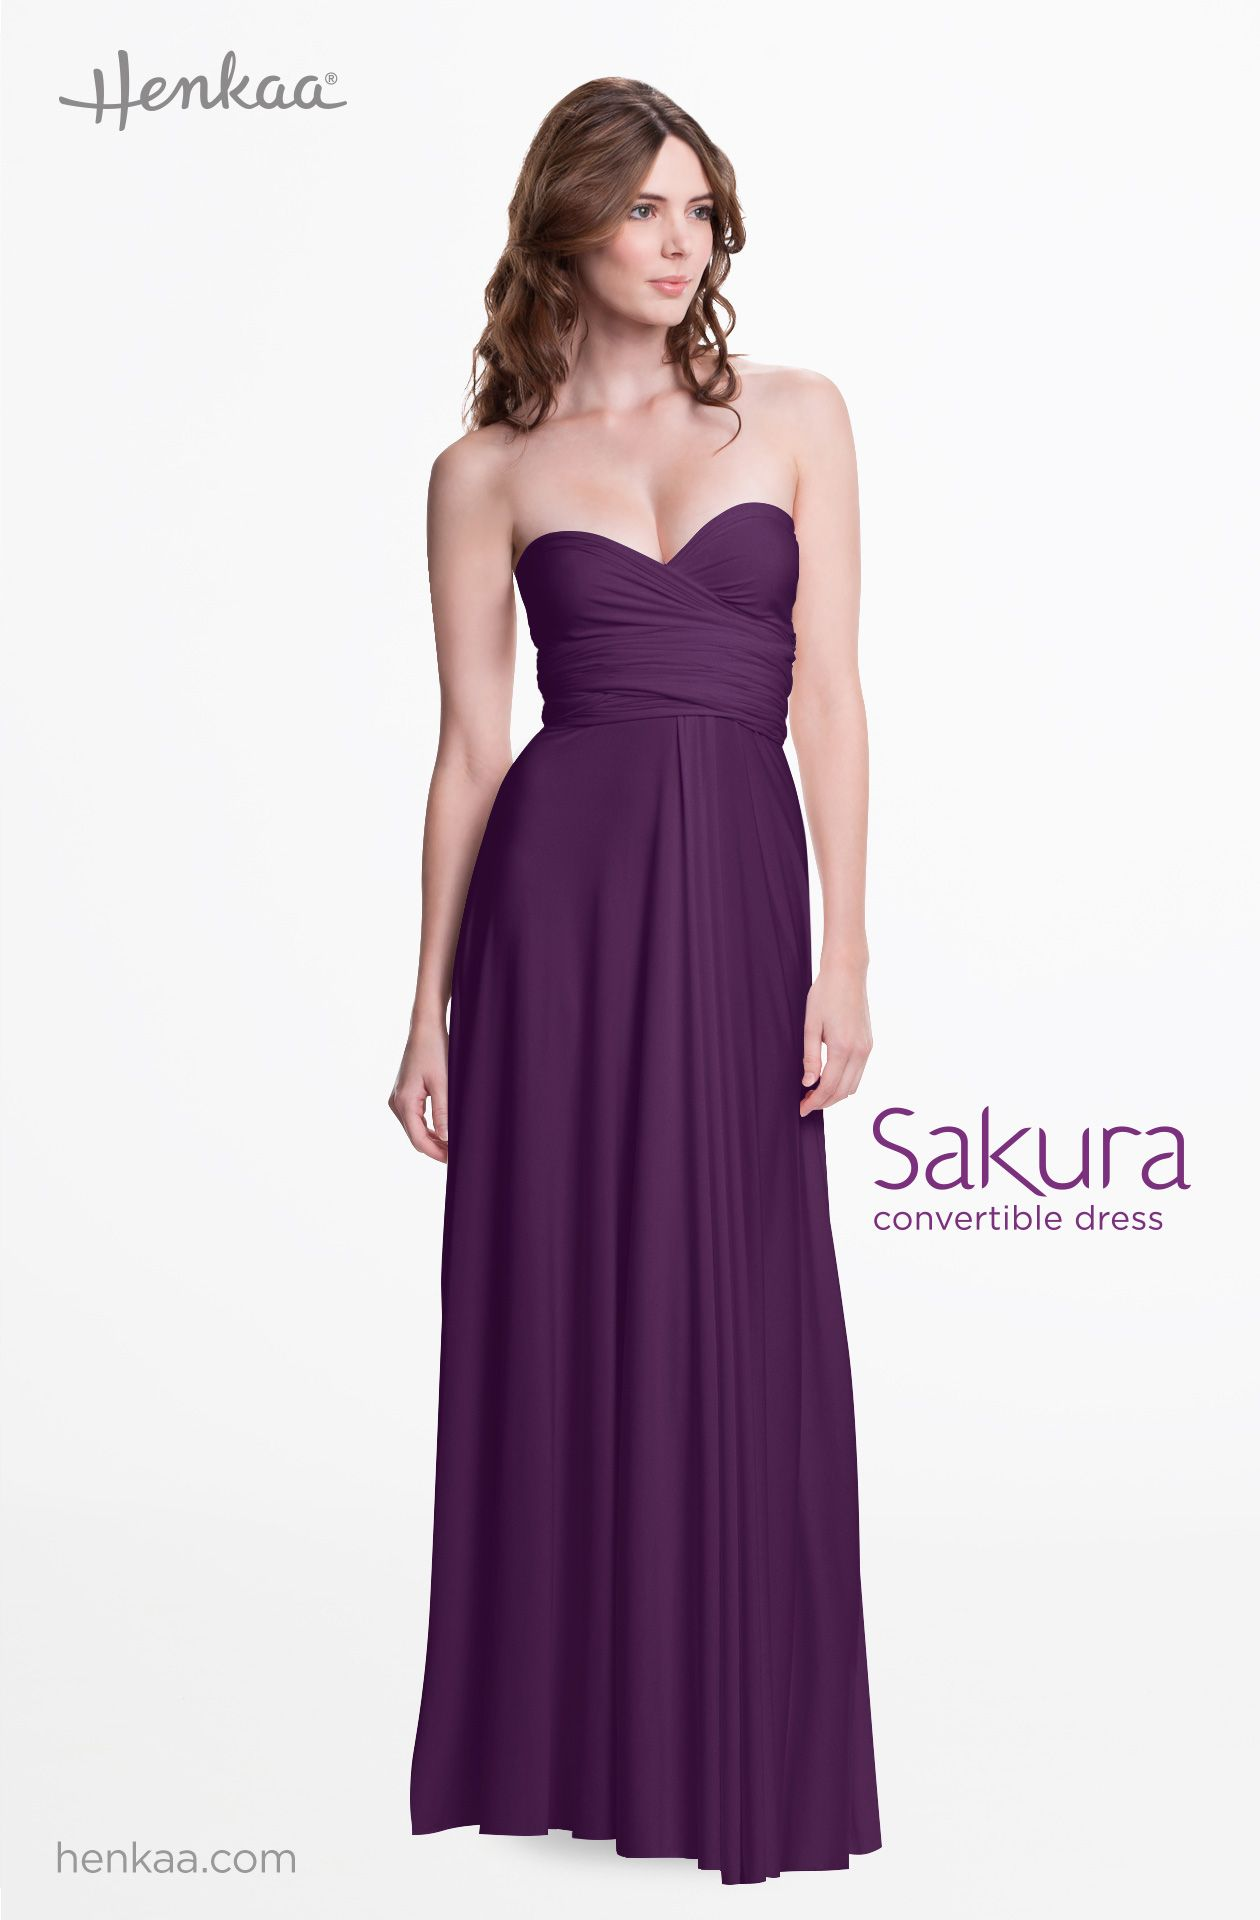 Learn to Style the Sakura Maxi Convertible Dress in the Love Style ...